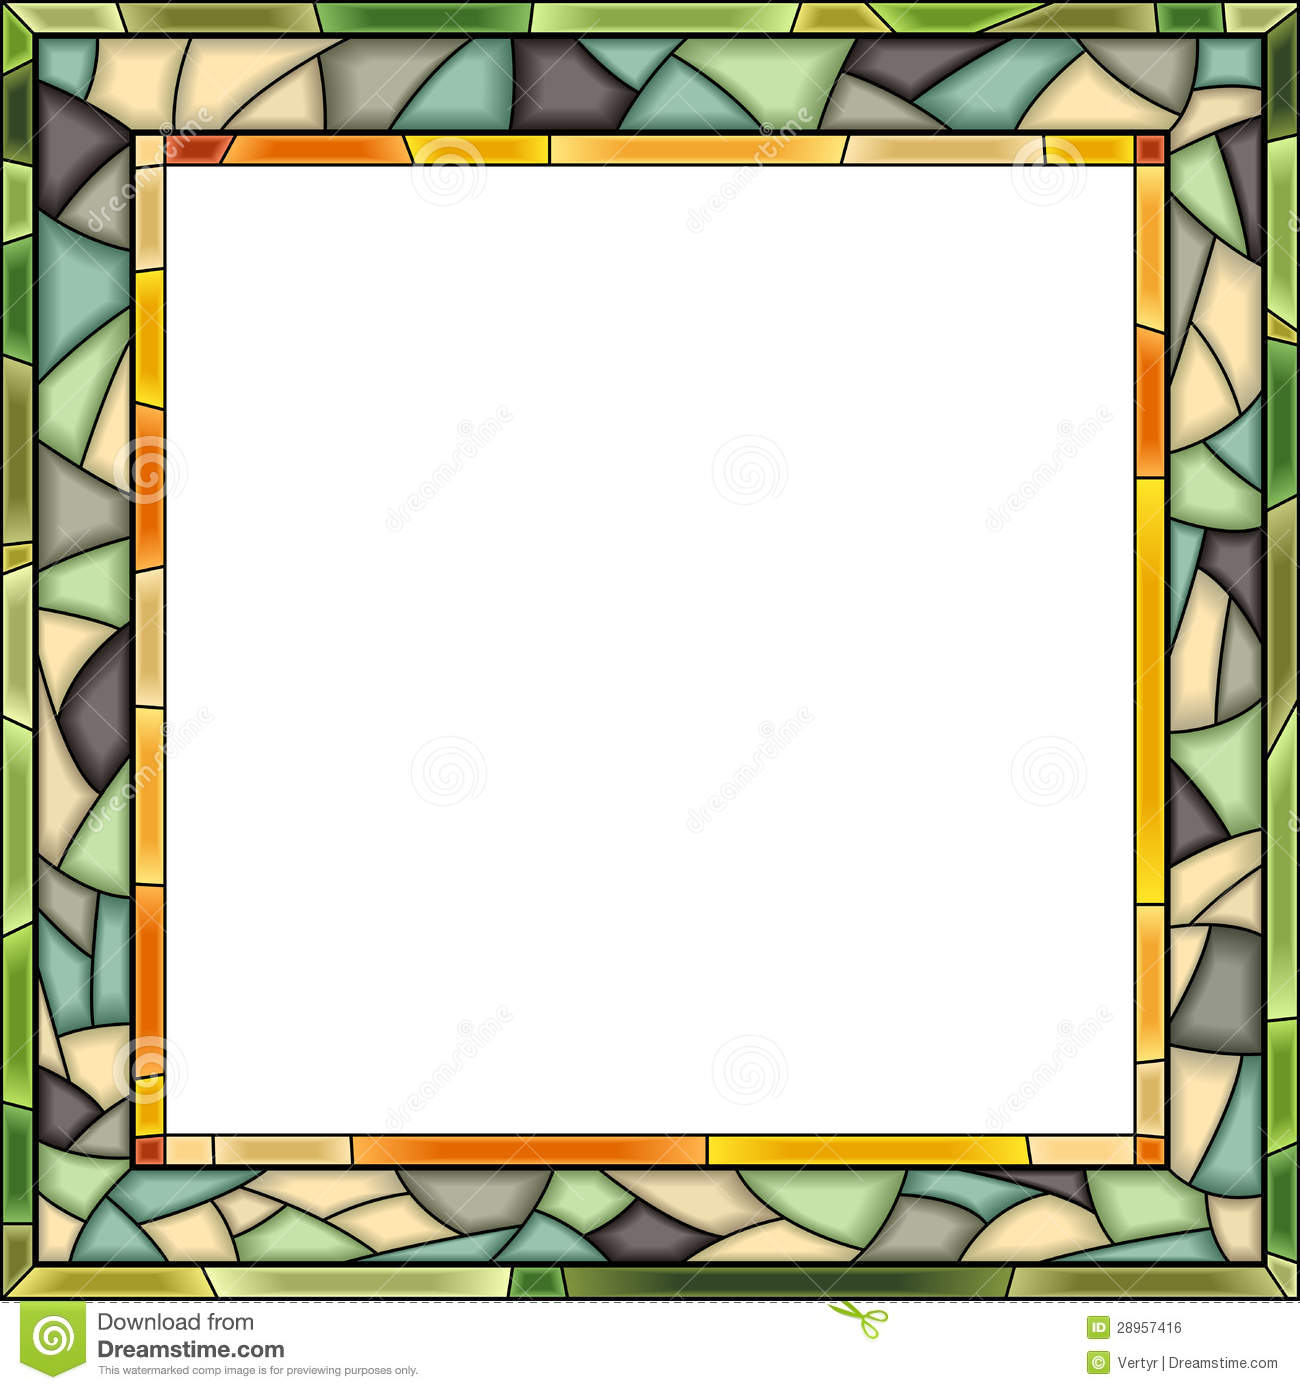 Vector stained glass window frame for photography stock for Window design clipart